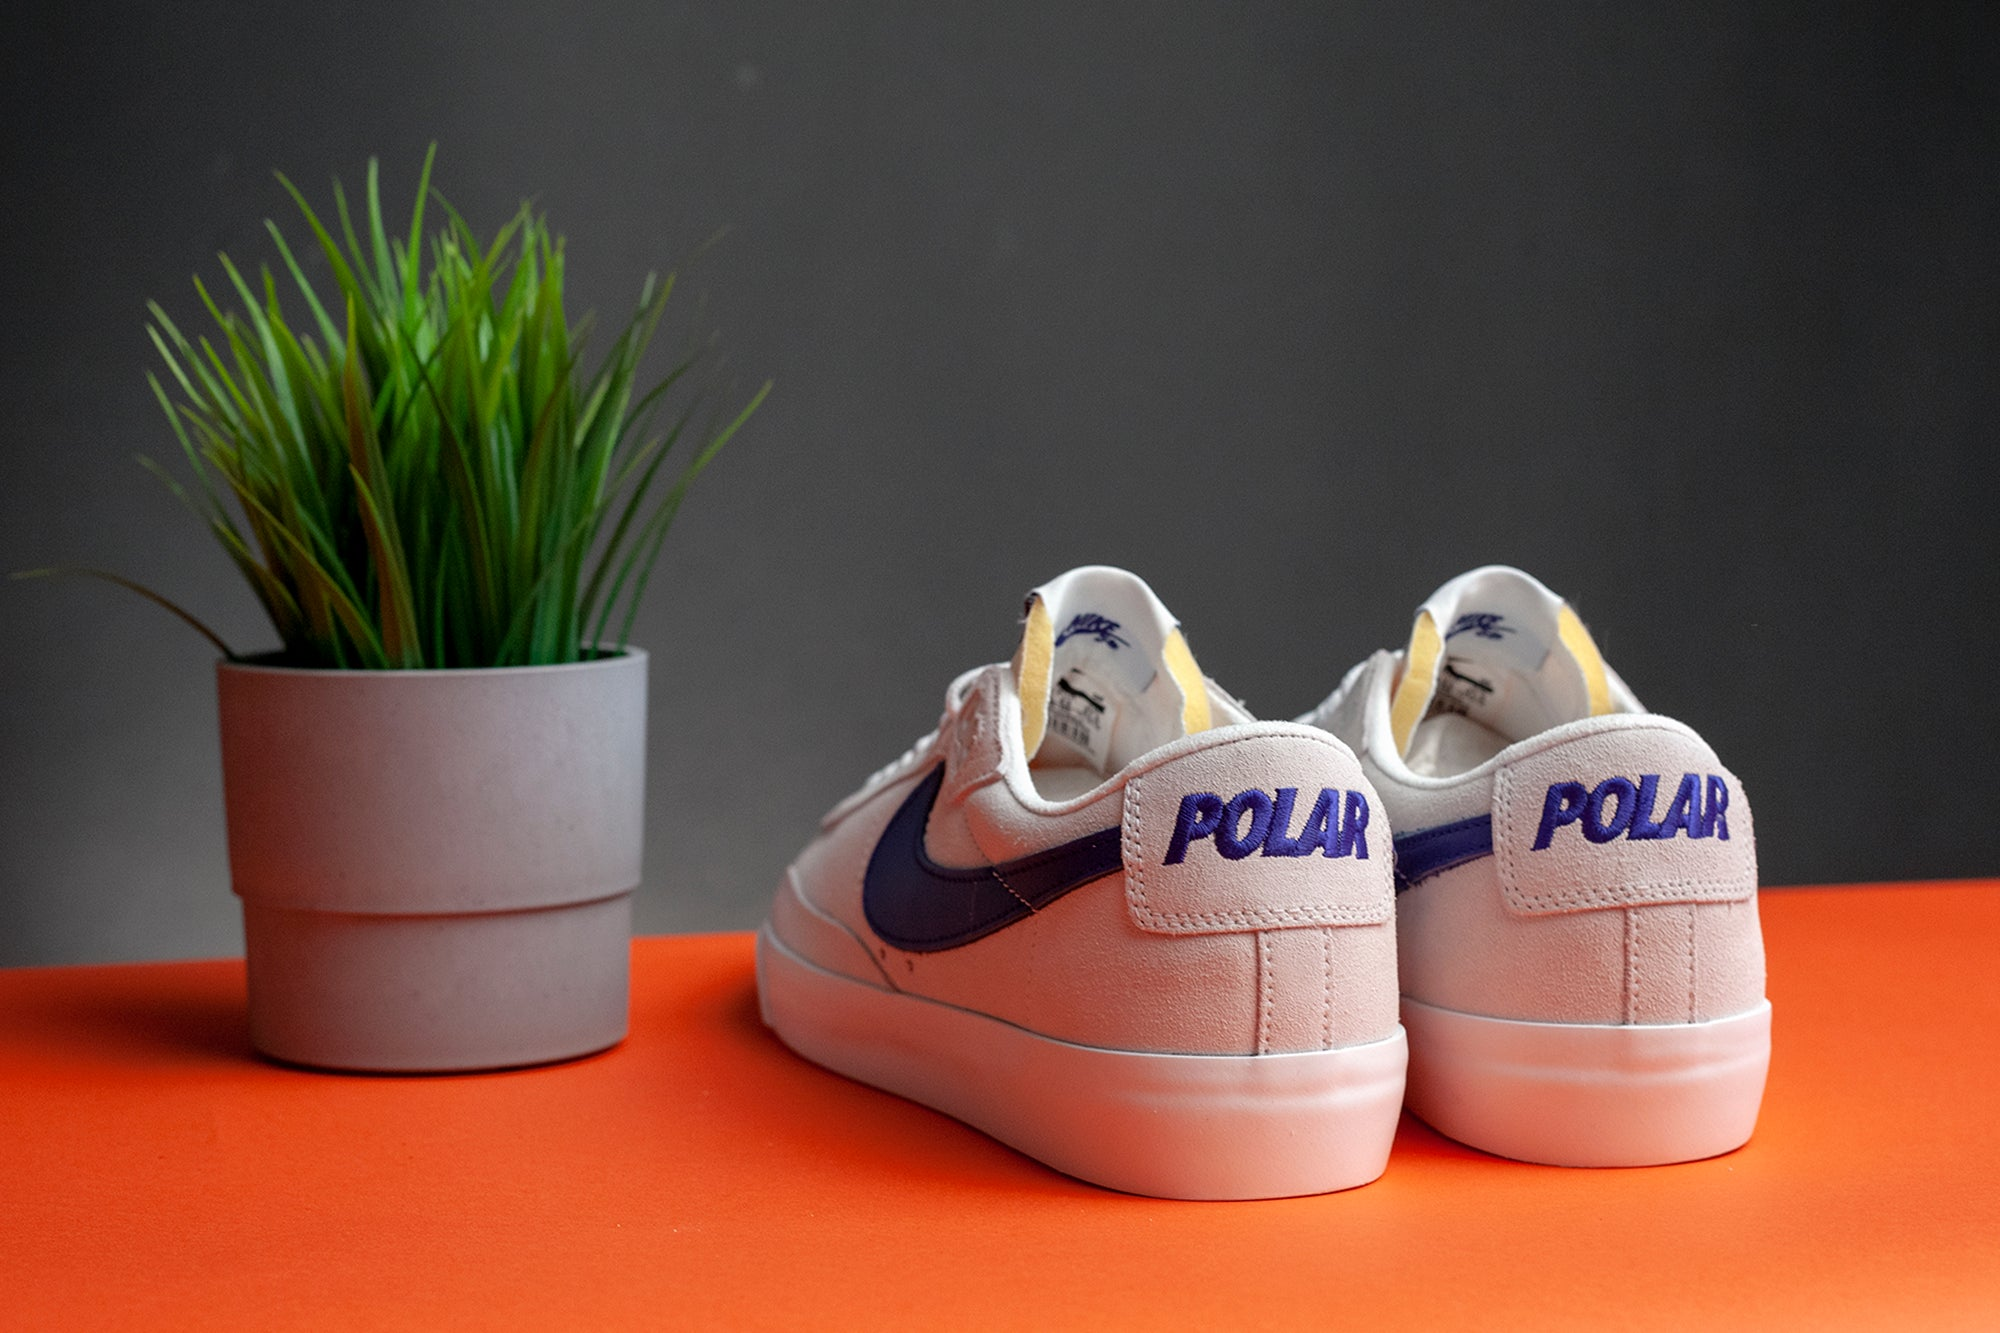 Nike_SB_x_Polar_Zoom_Blazer_GT_Low_2